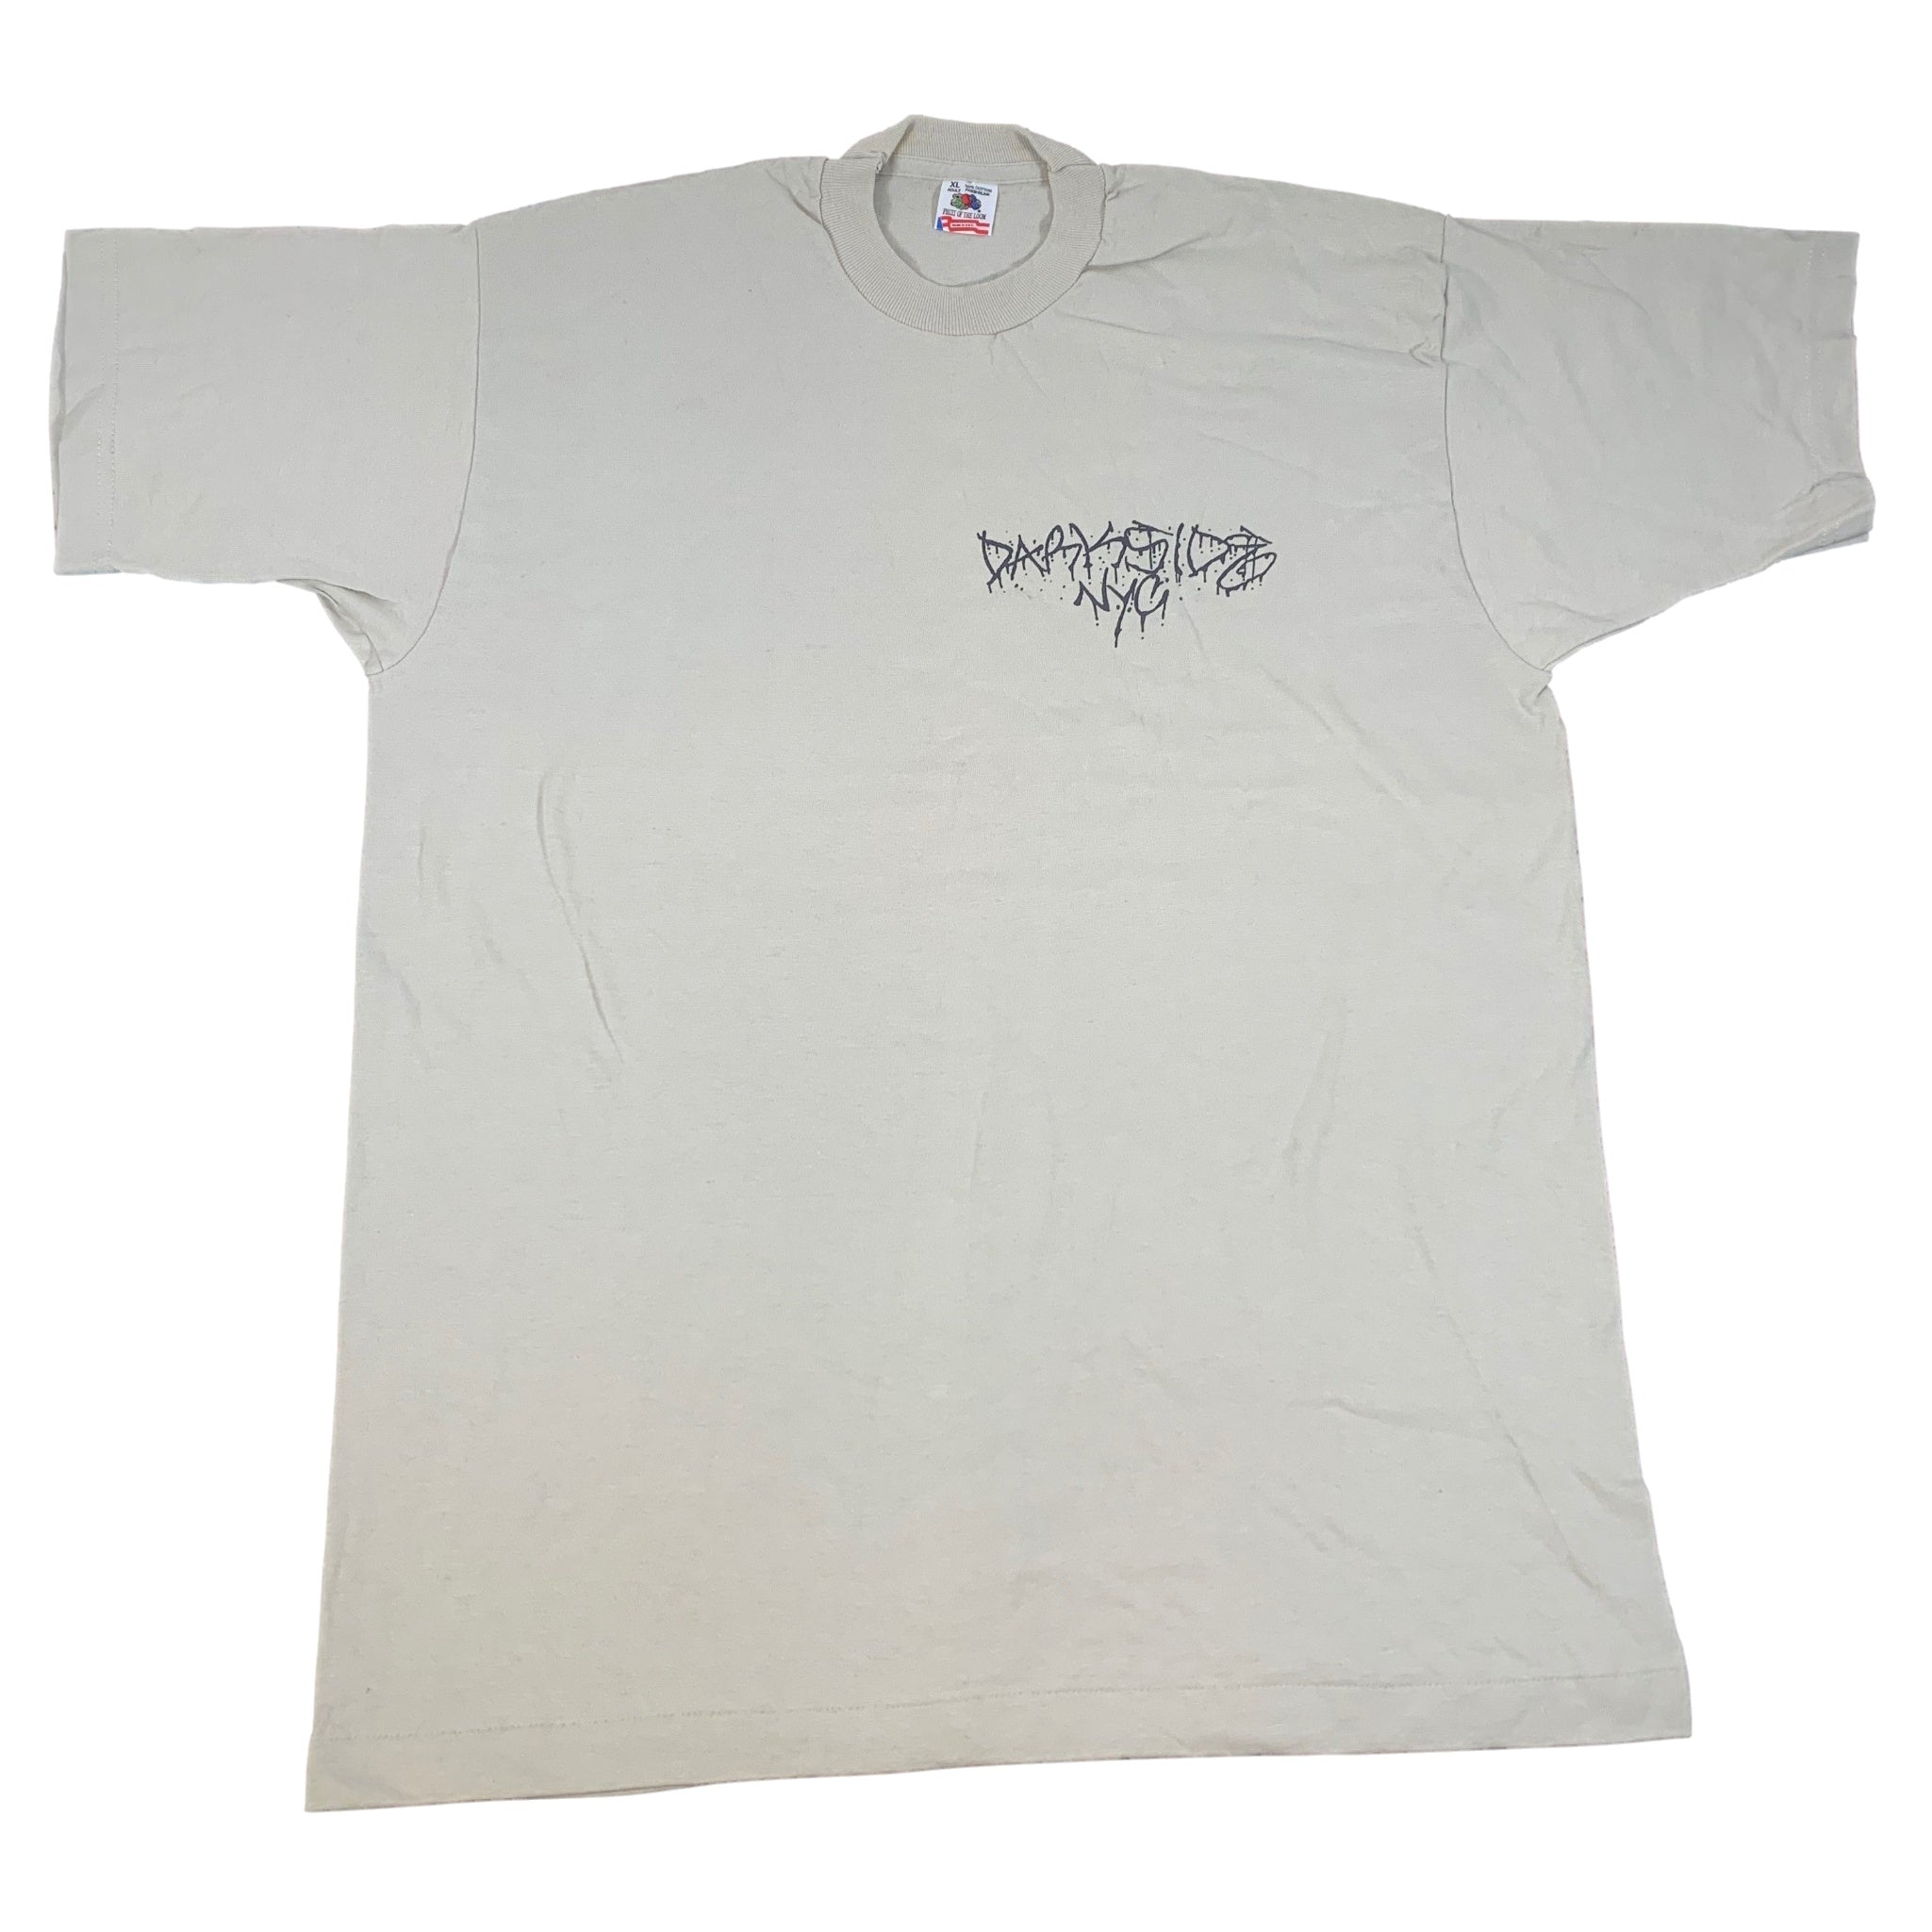 "Vintage Darkside NYC ""Pocket Print"" T-Shirt"